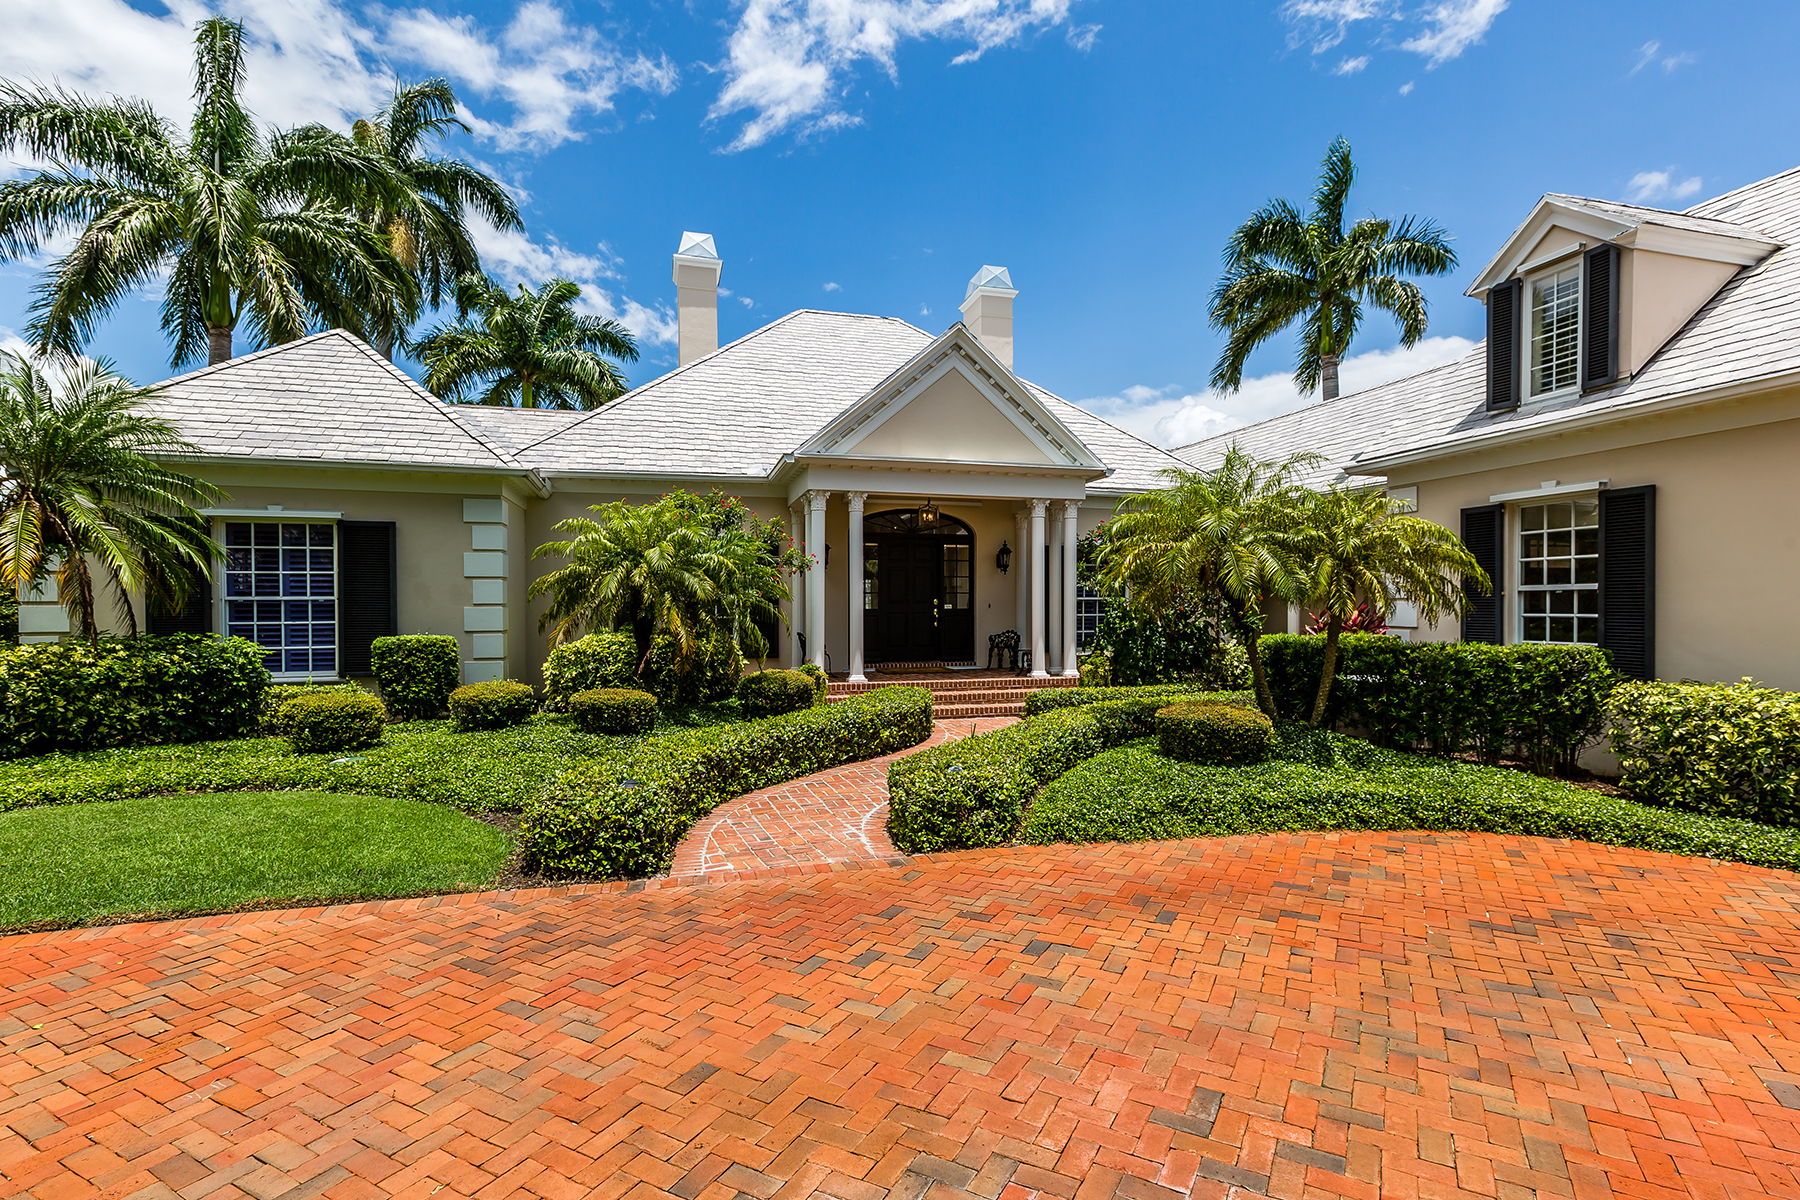 Single Family Home for Sale at PORT ROYAL 3333 Gin Ln, Naples, Florida 34102 United States